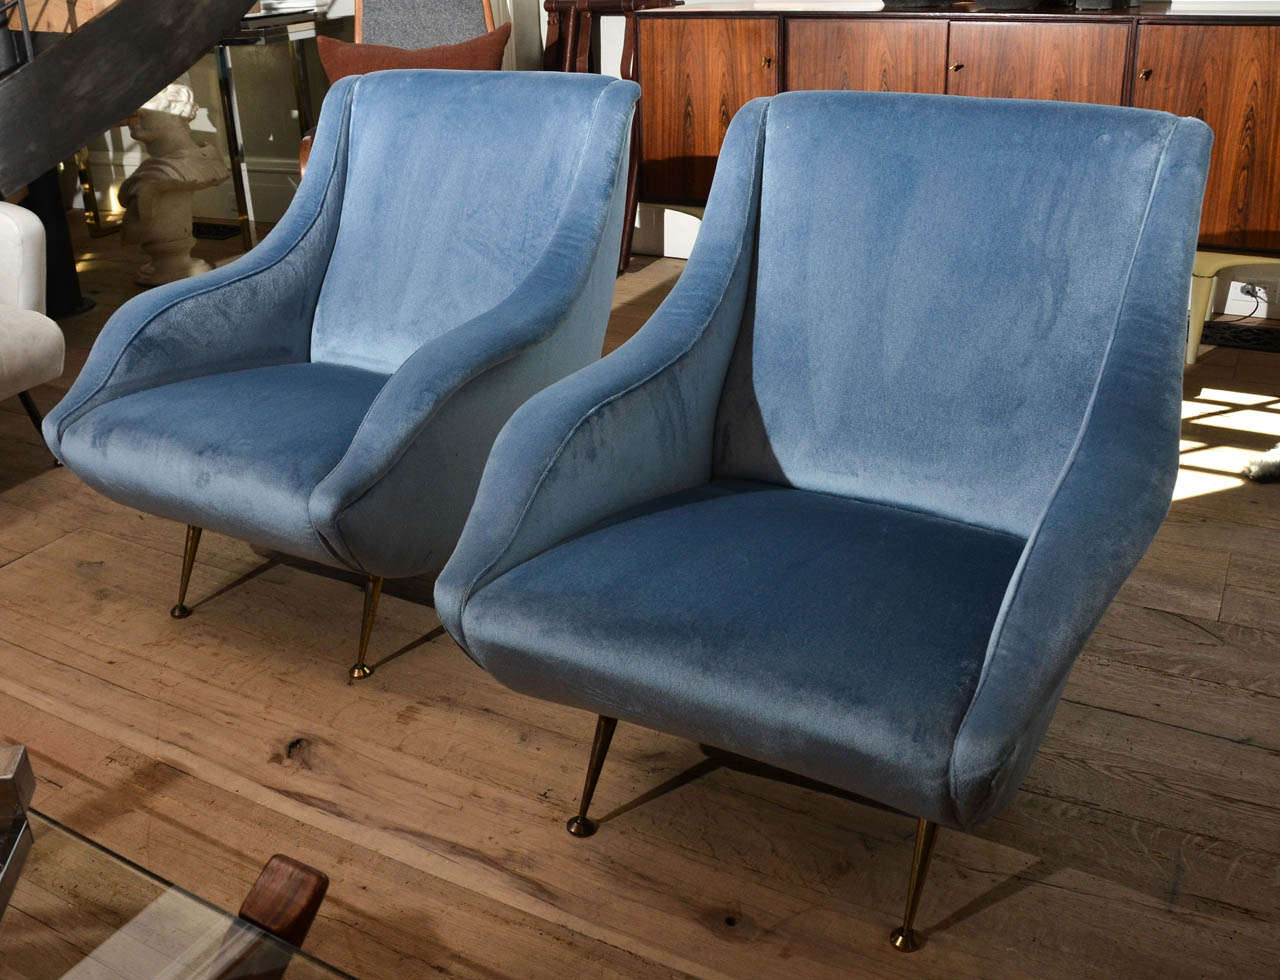 Stunning Mid Century Armchairs In The Style Of Gio Ponti Newly Re Upholstered